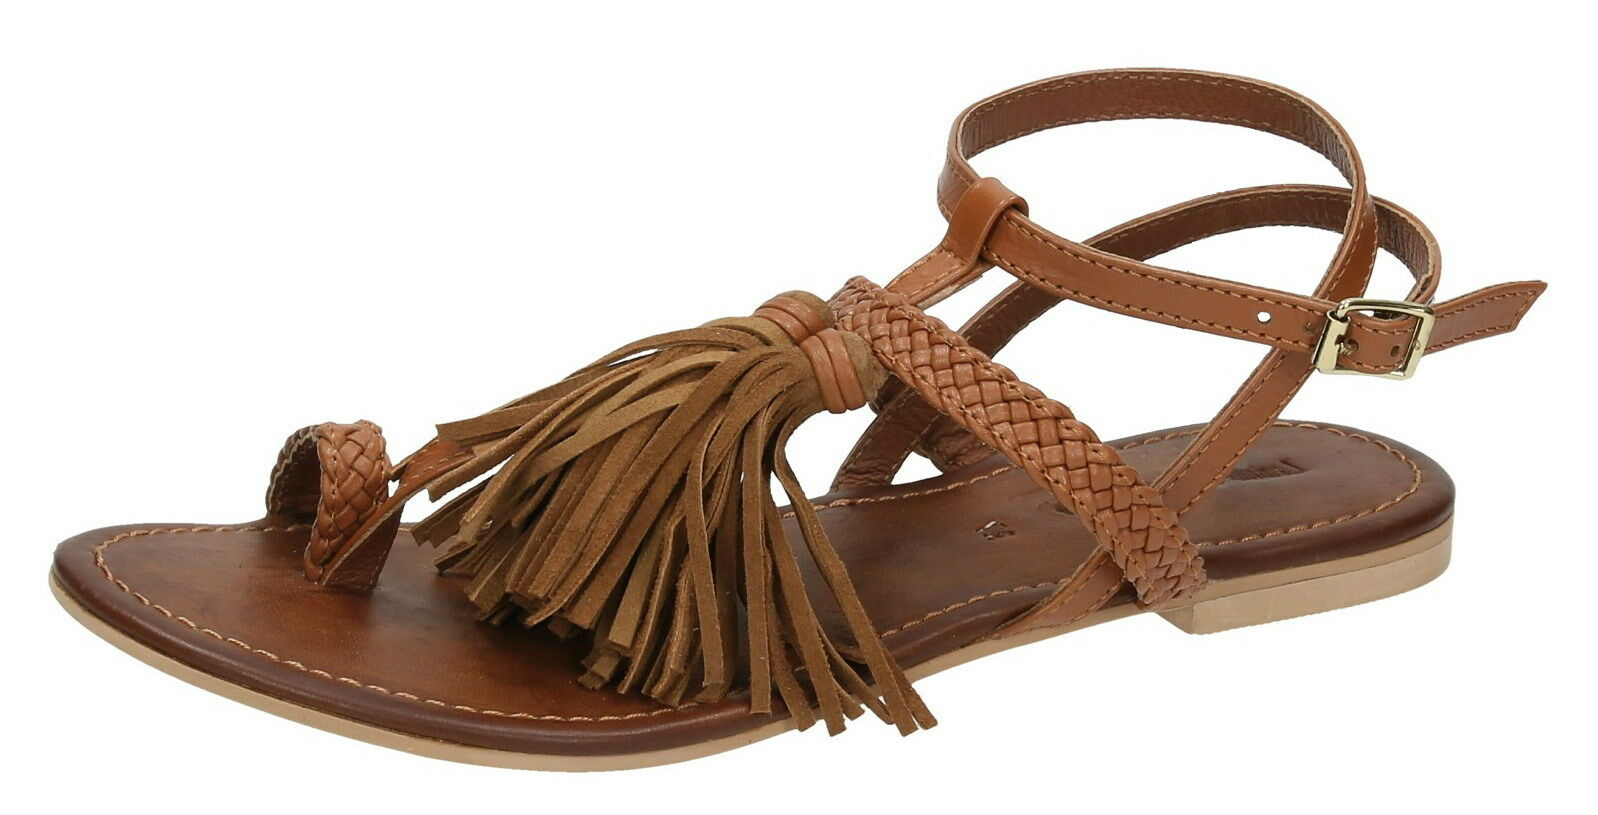 Leather Collection Sandals F0950 Ladies Tan Slingback Leather Sandals Collection with Toe Loop 9dd790